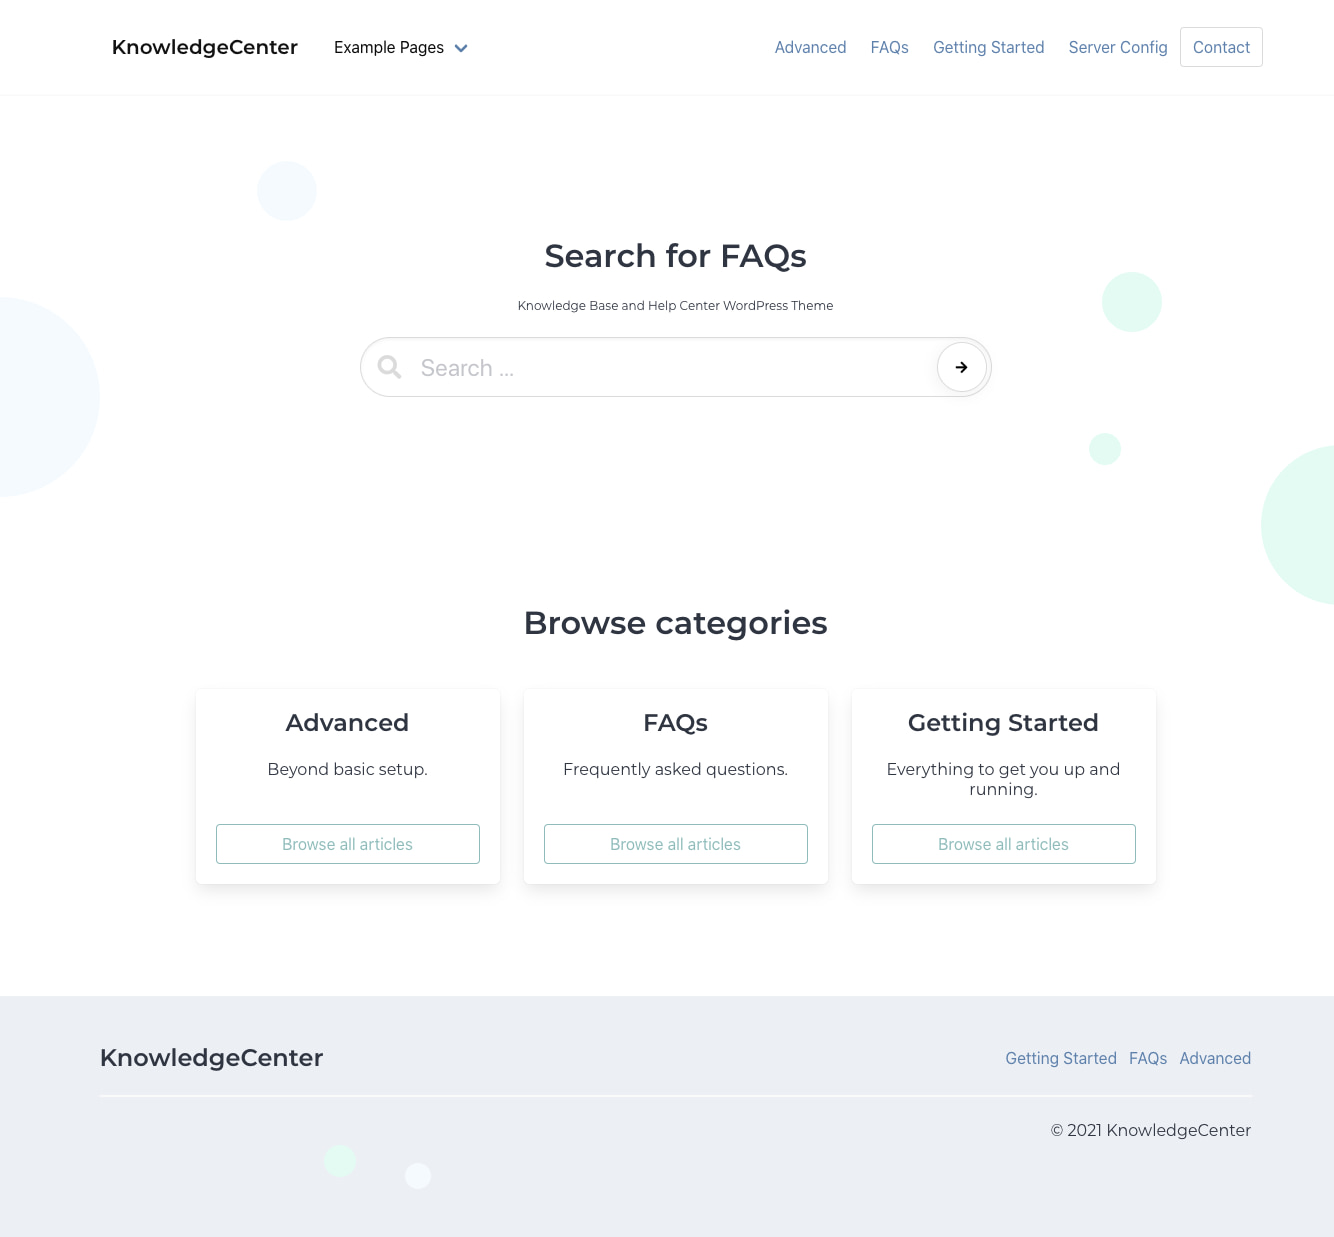 Minimalist Knowledge Base website created with the free KnowledgeCenter theme for WordPress